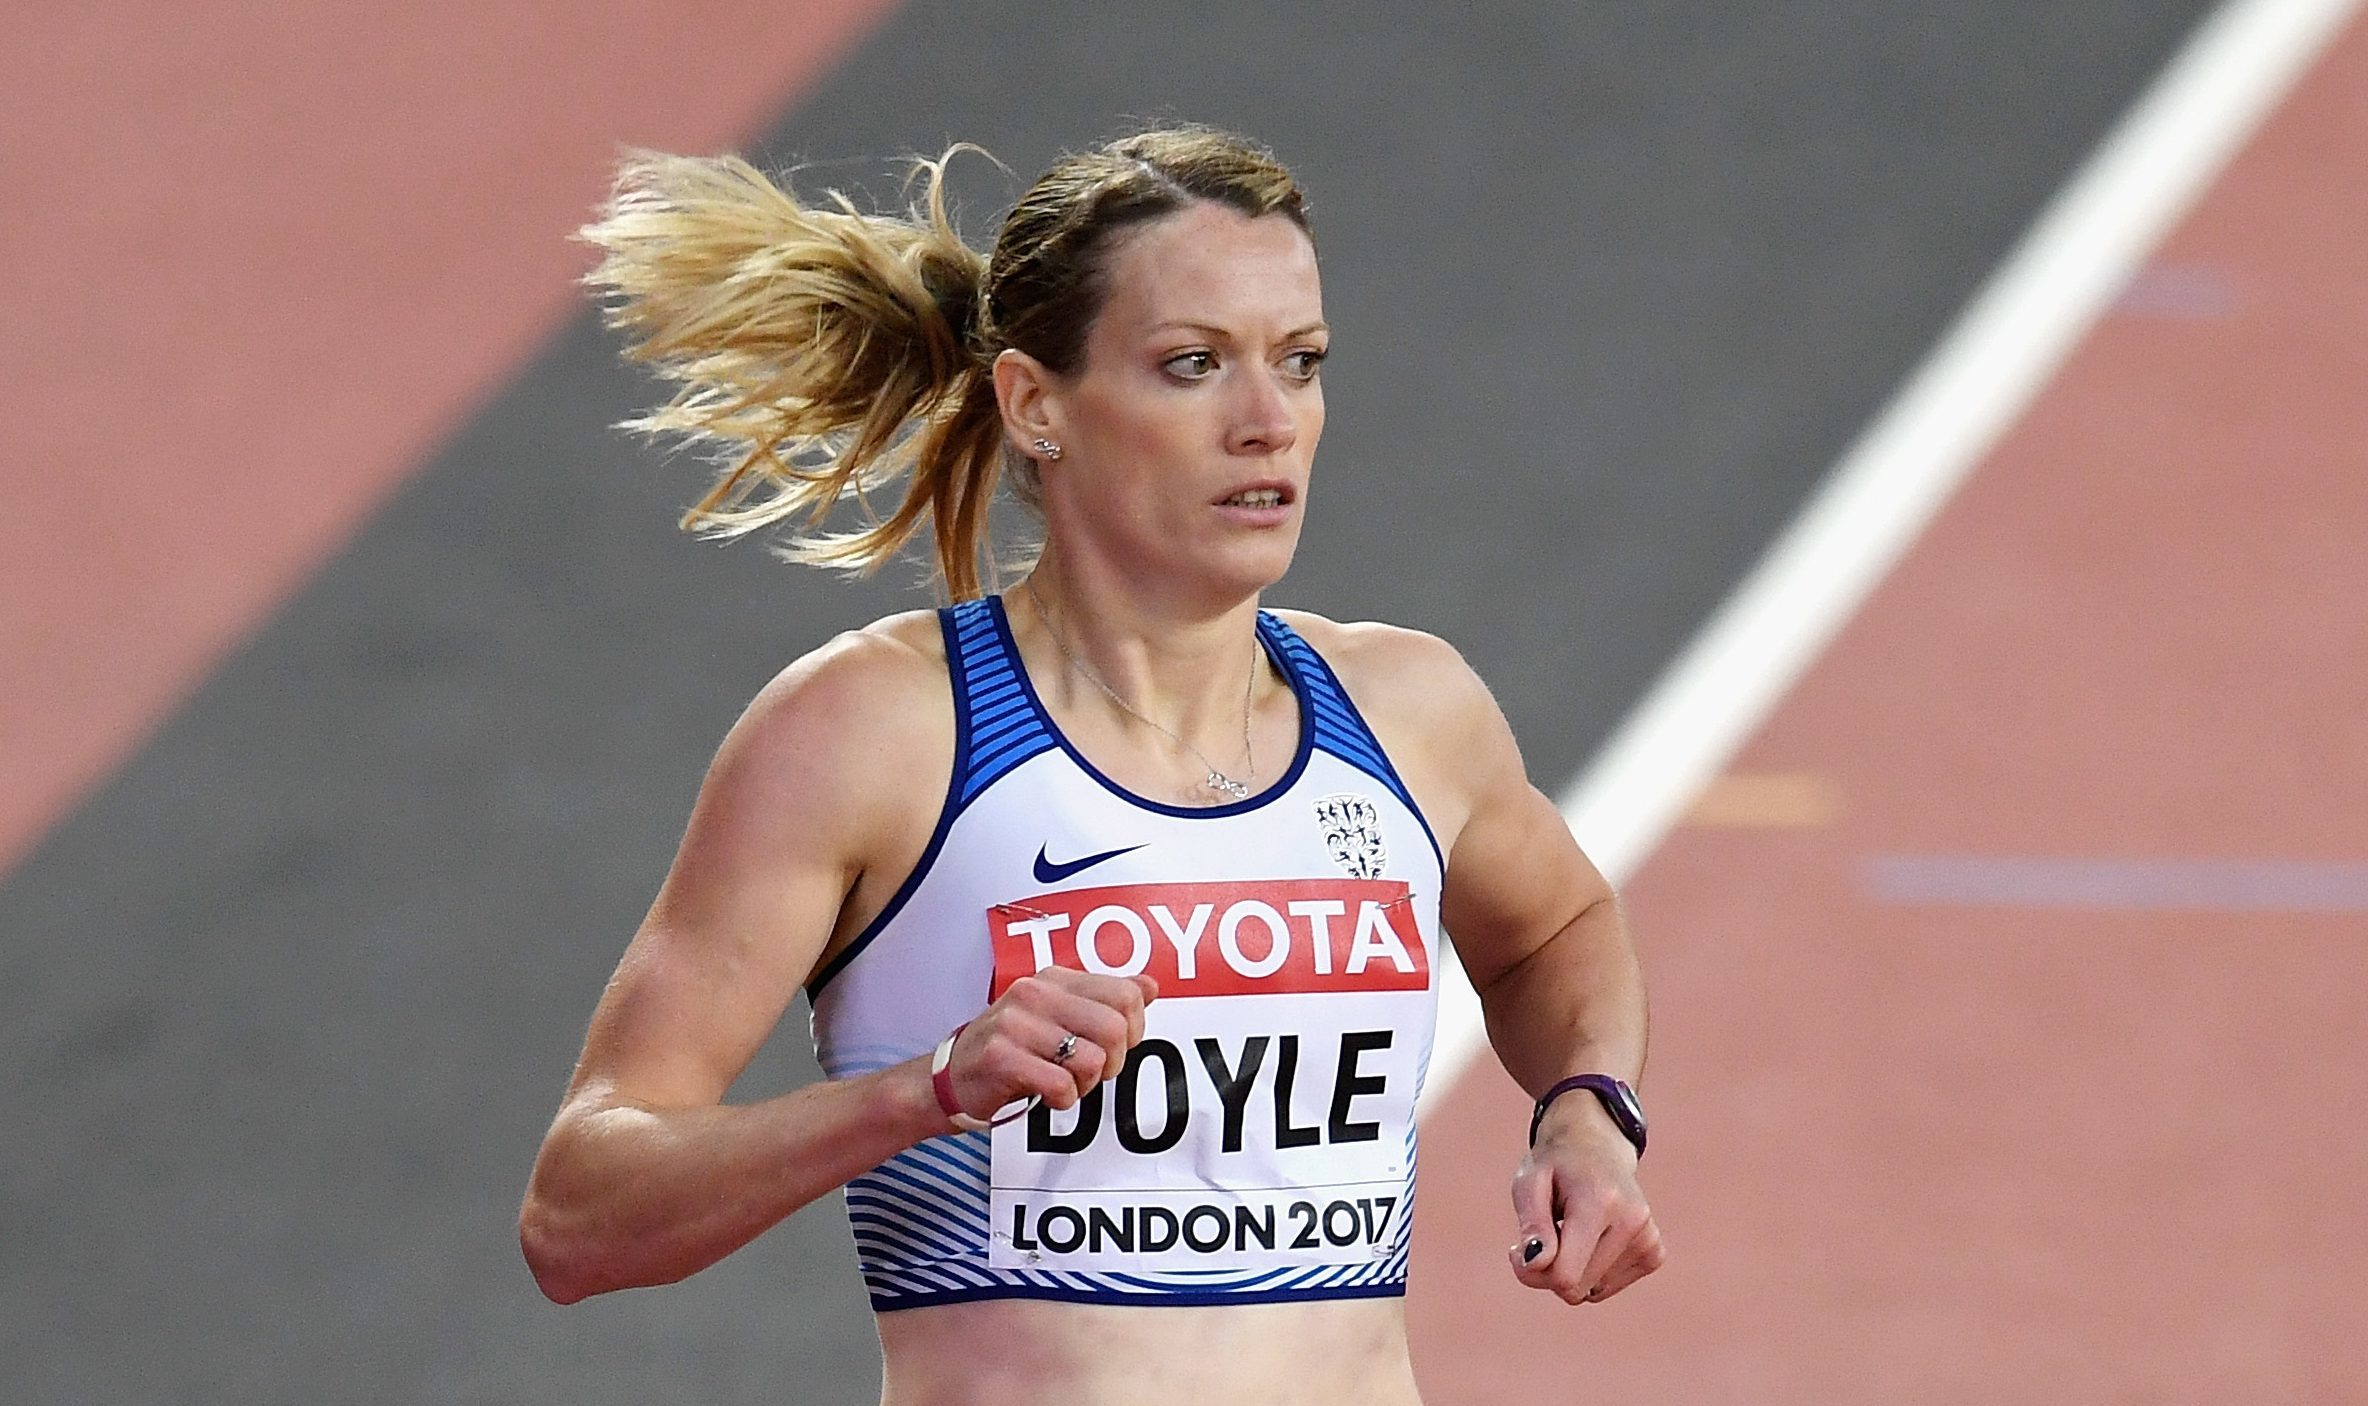 Eilidh Doyle of Great Britain competes in the Women's 400 metres hurdles heats during day four of the 16th IAAF World Athletics Championships (David Ramos/Getty Images)